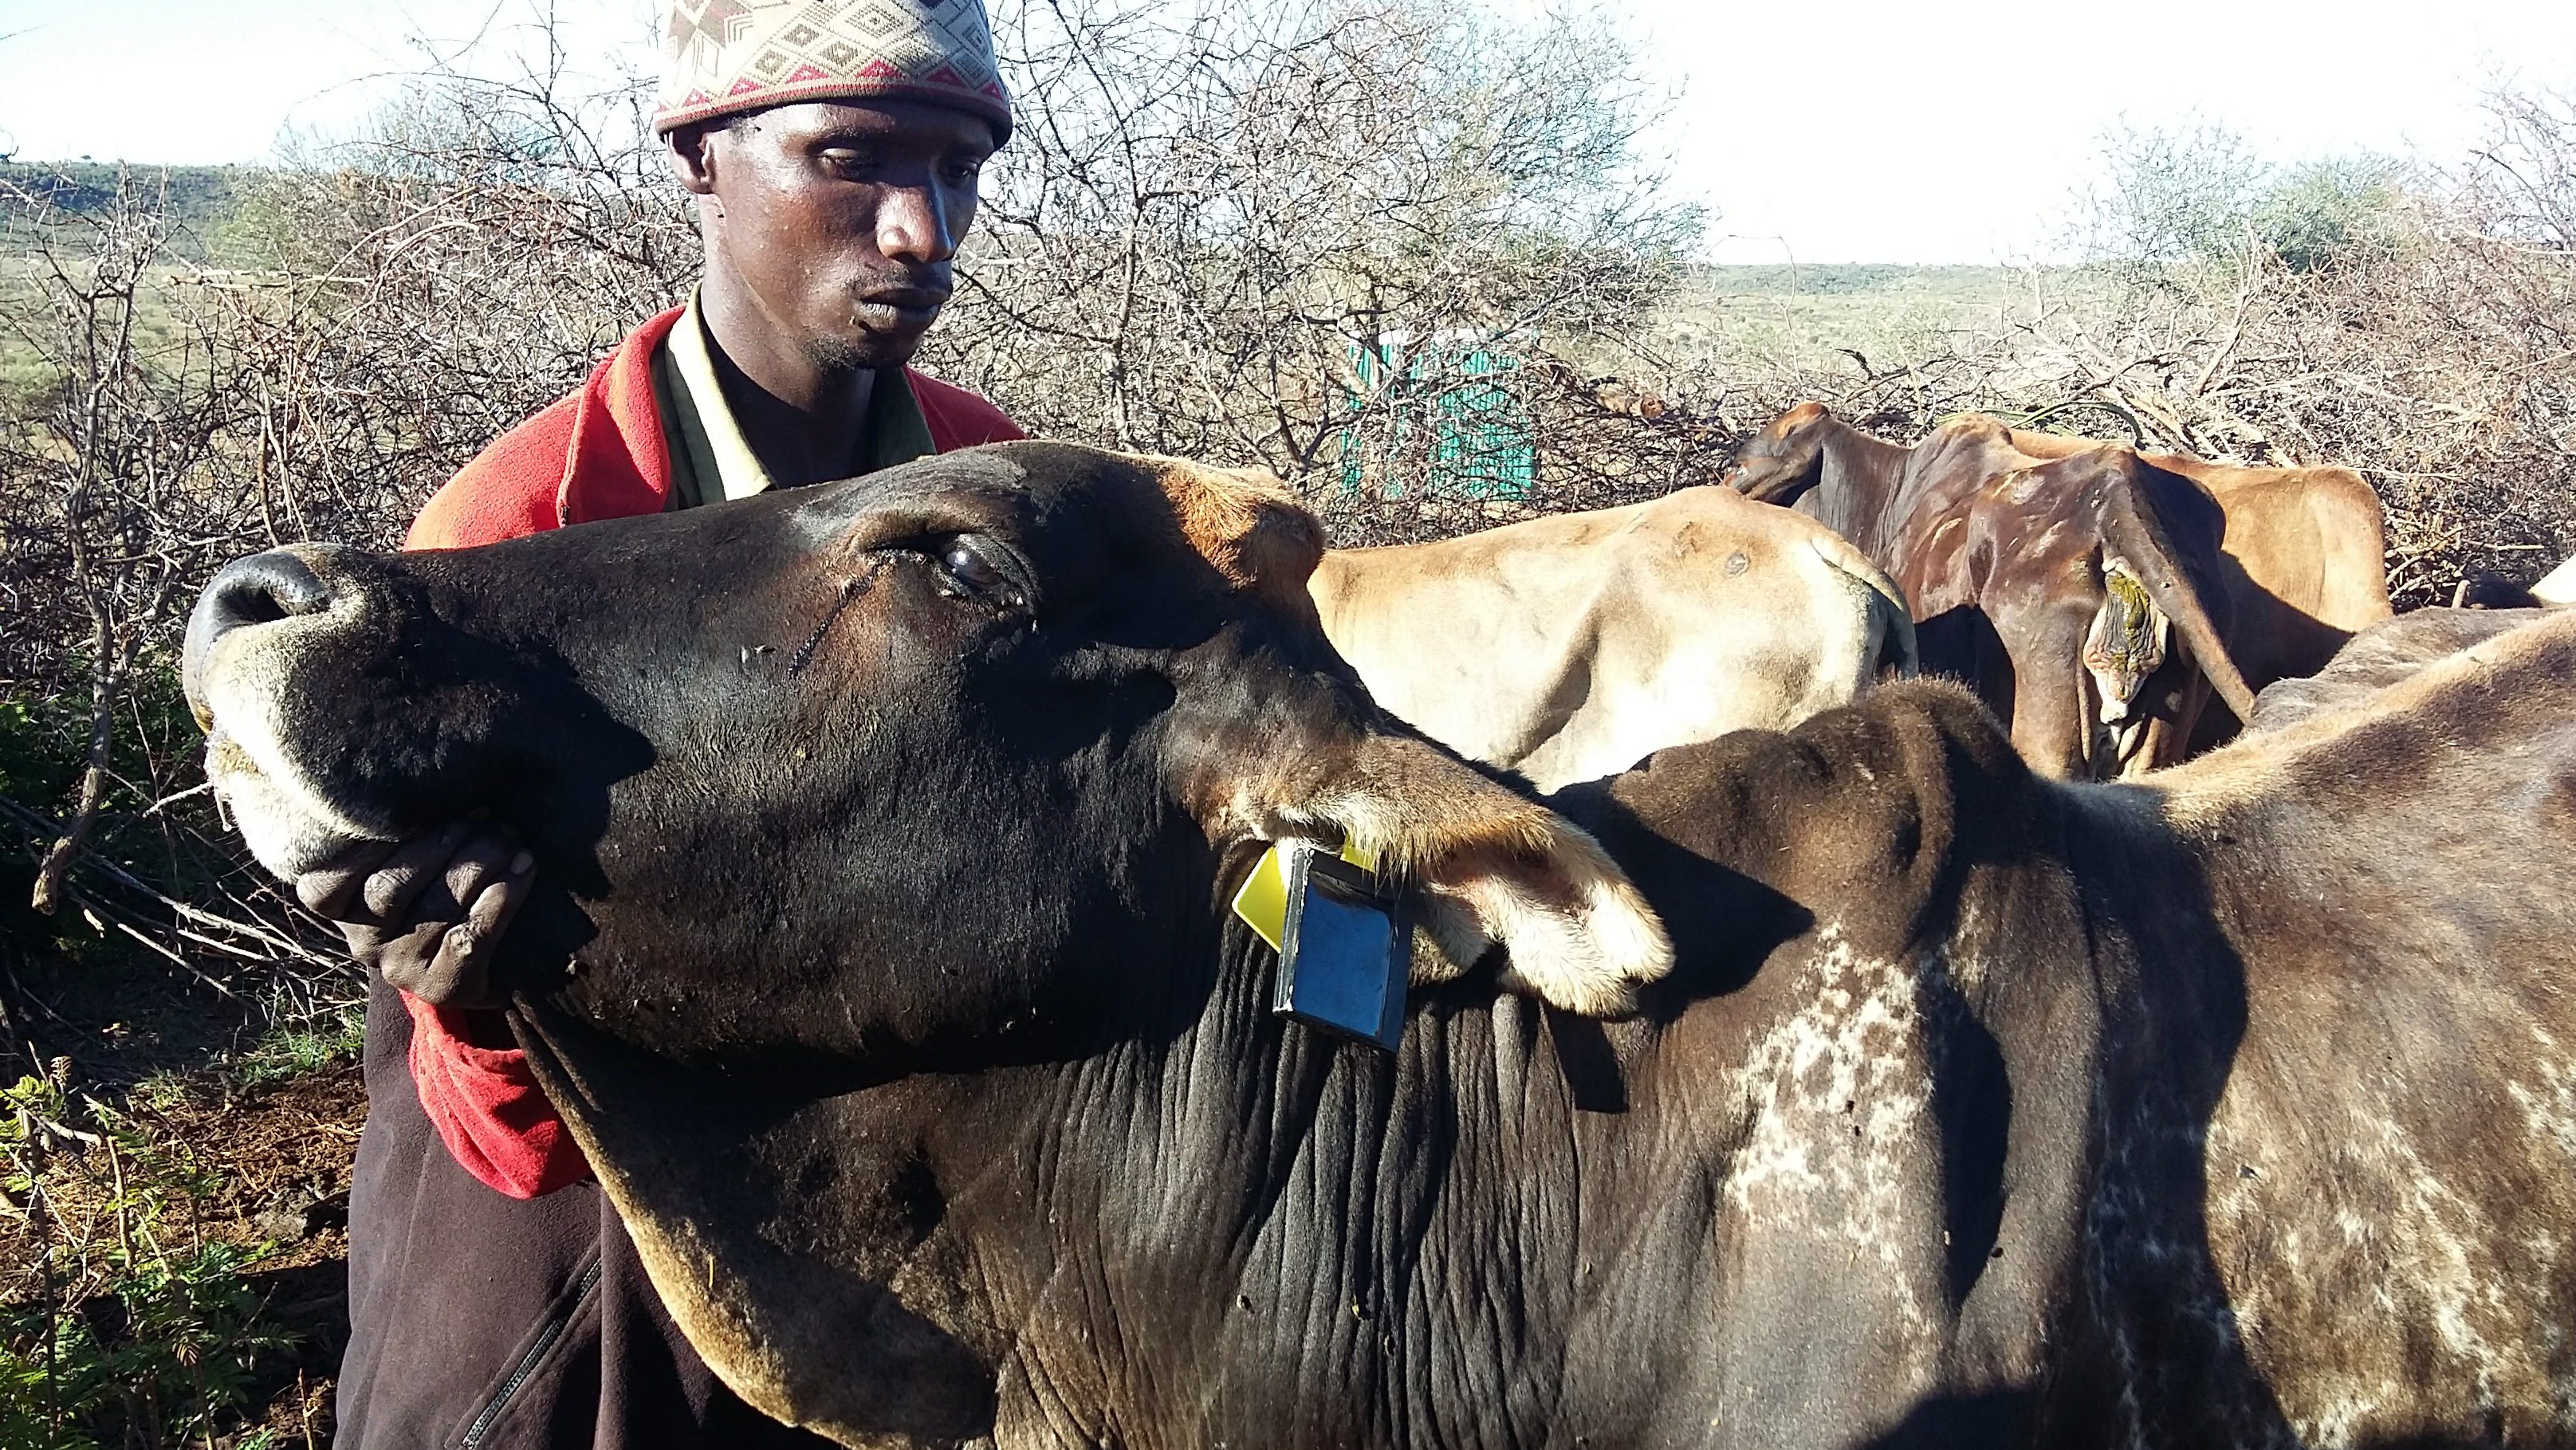 Climate Change Kenya Cattle Theft Tackled With Remote